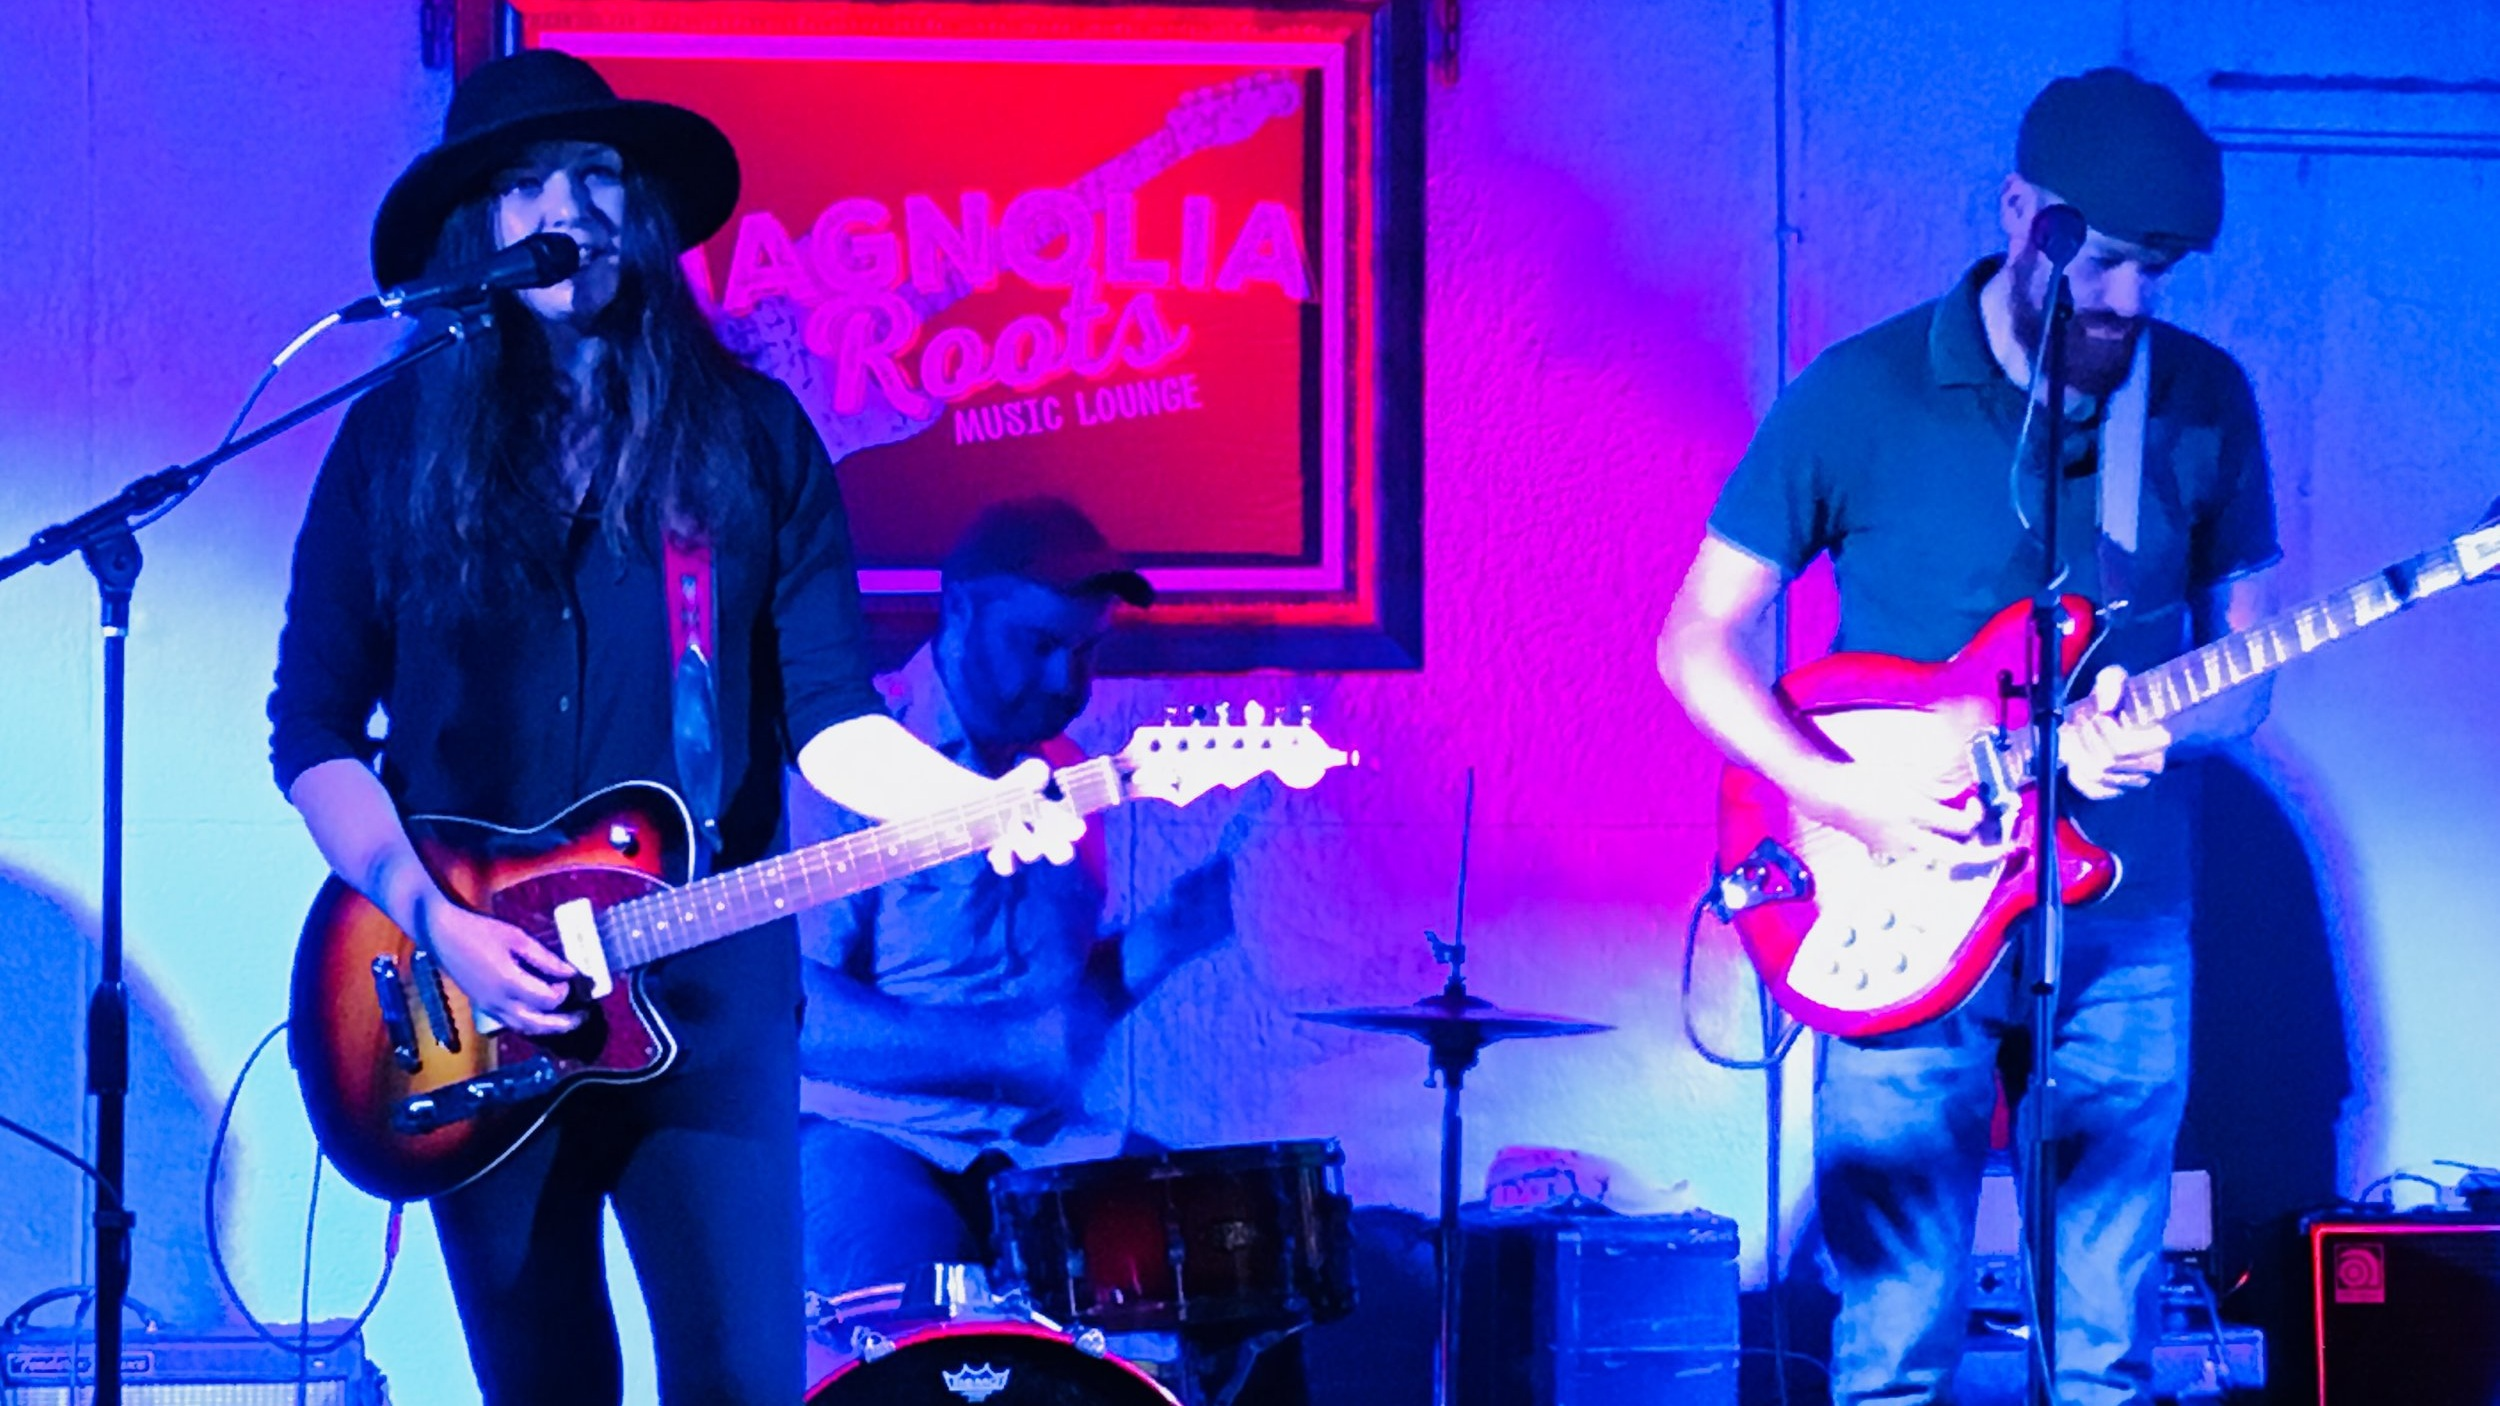 Asbury Park's Lowlight was the headline at the Sofar event at Magnolia Roots in Wake Forest.